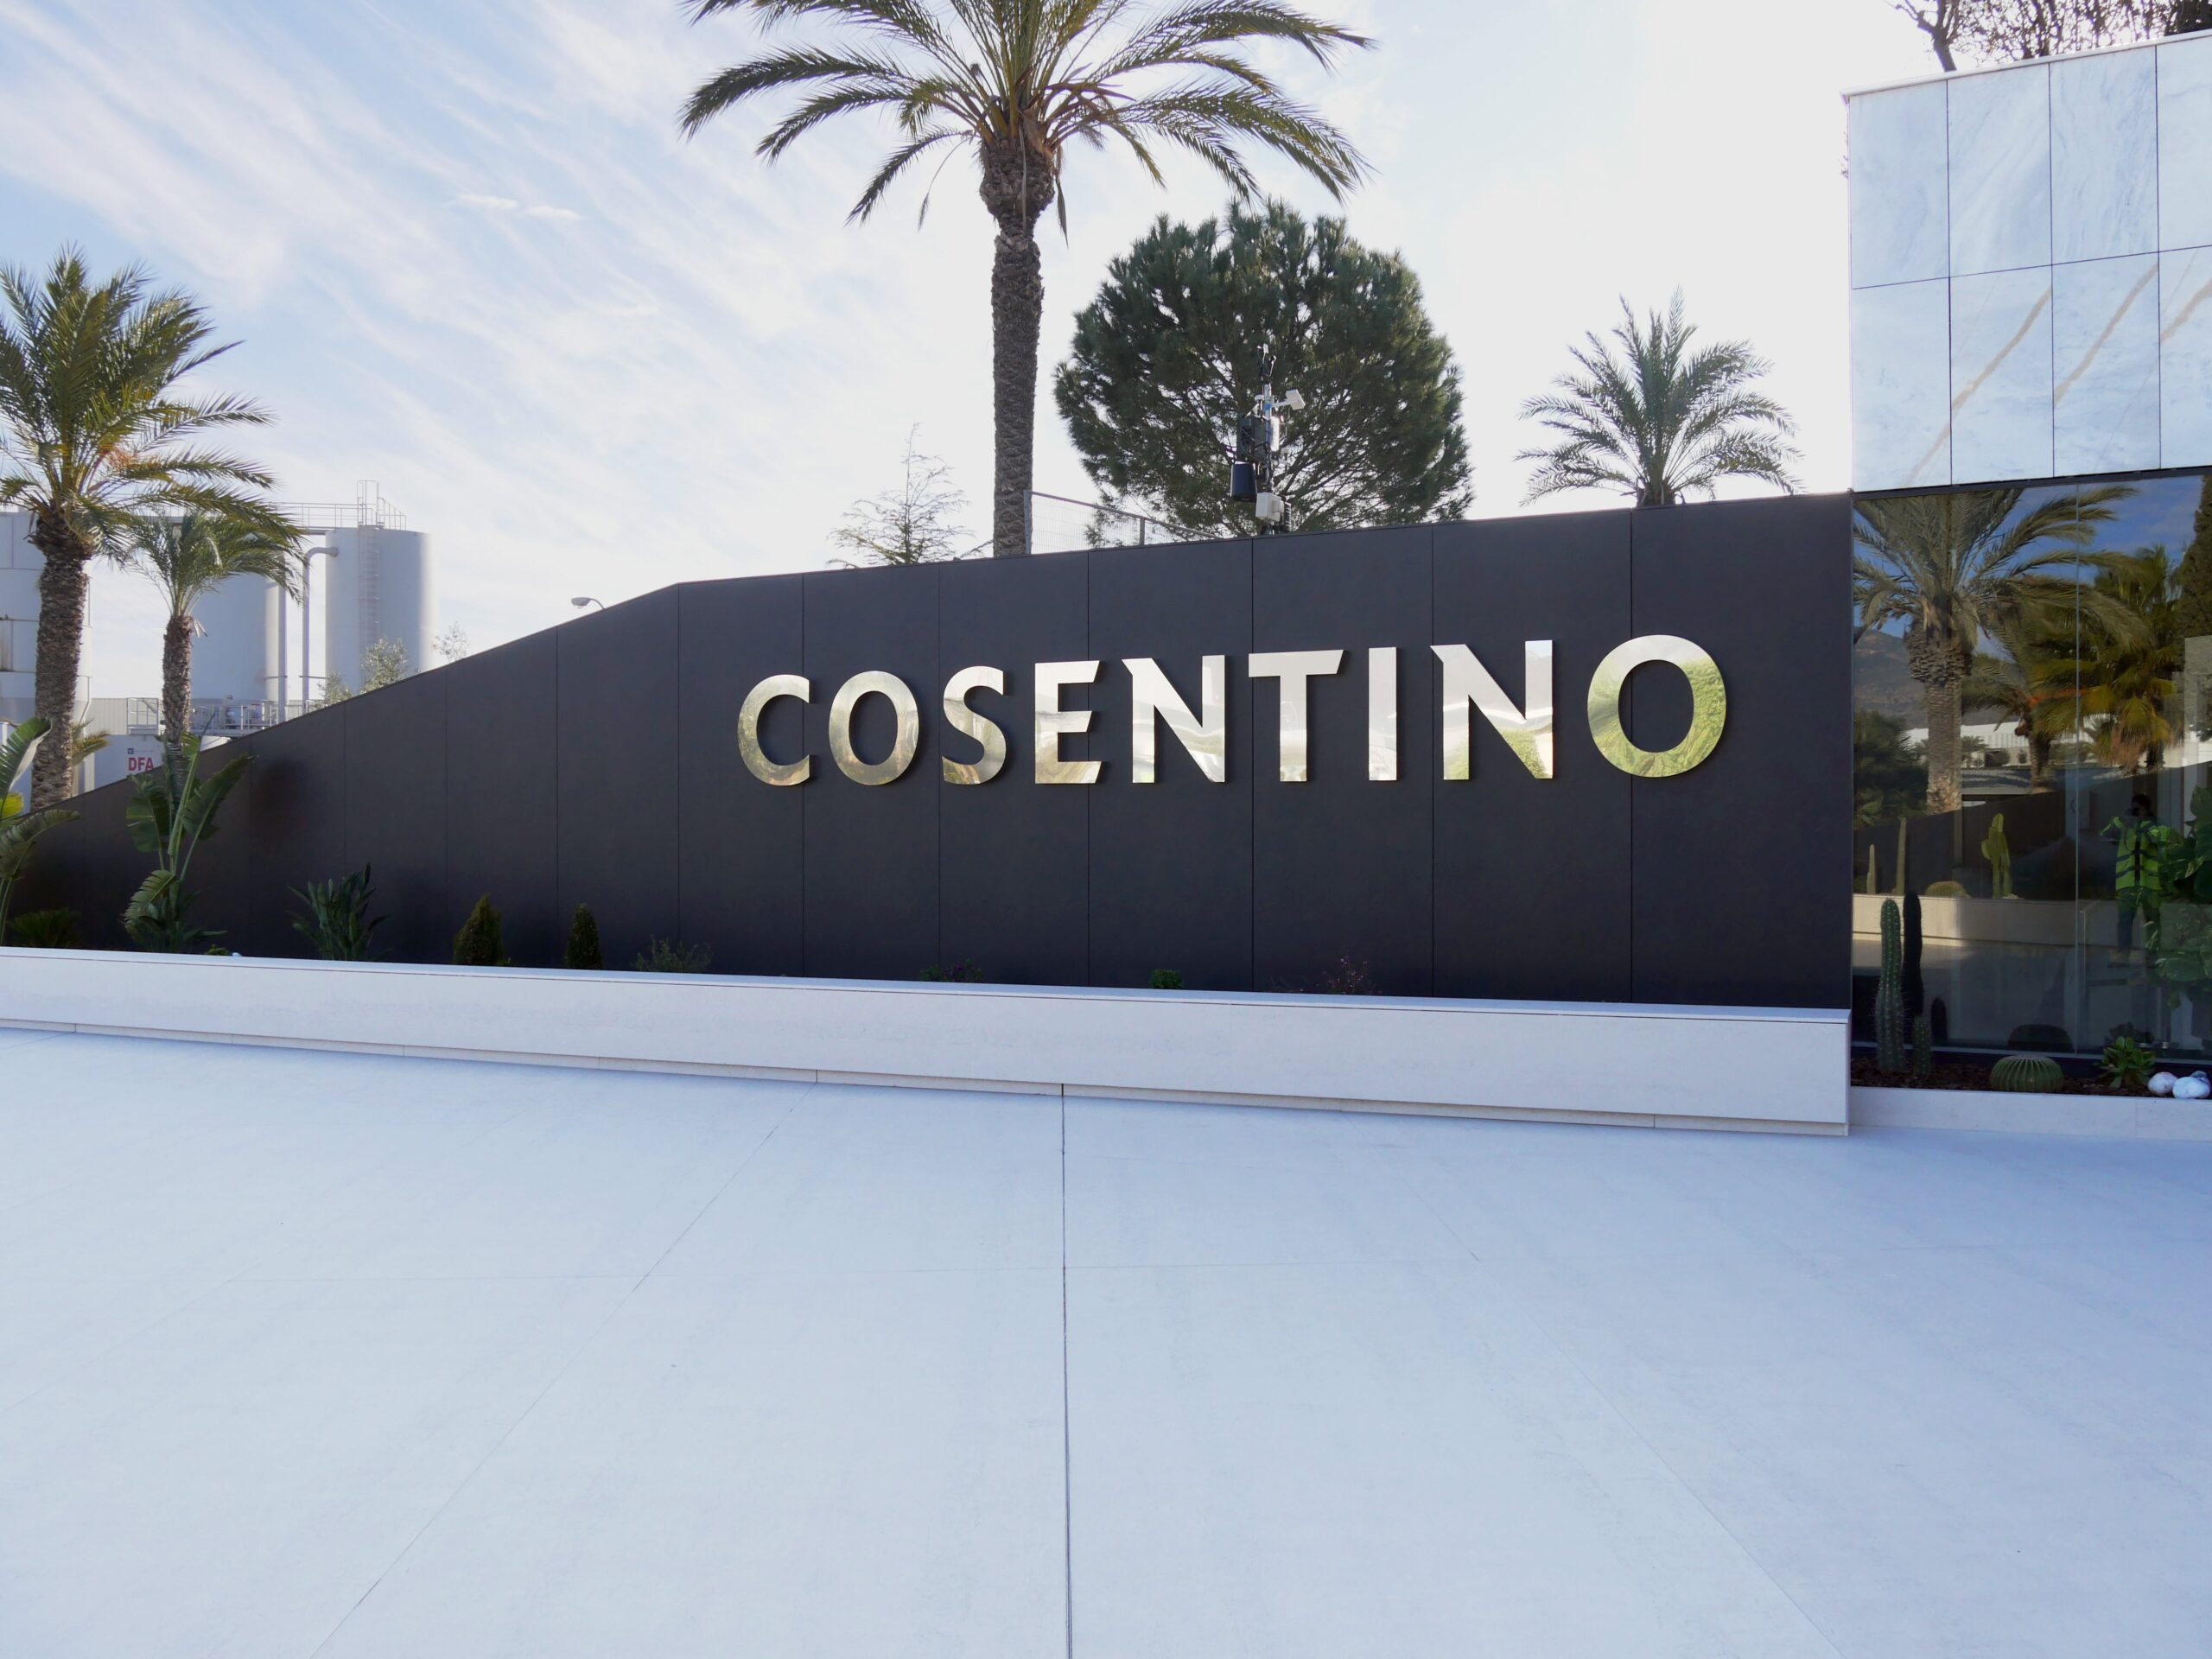 Image of Entrada HQ Cosentino 2 1 3 scaled in The Cosentino Group and GandiaBlasco join forces - Cosentino